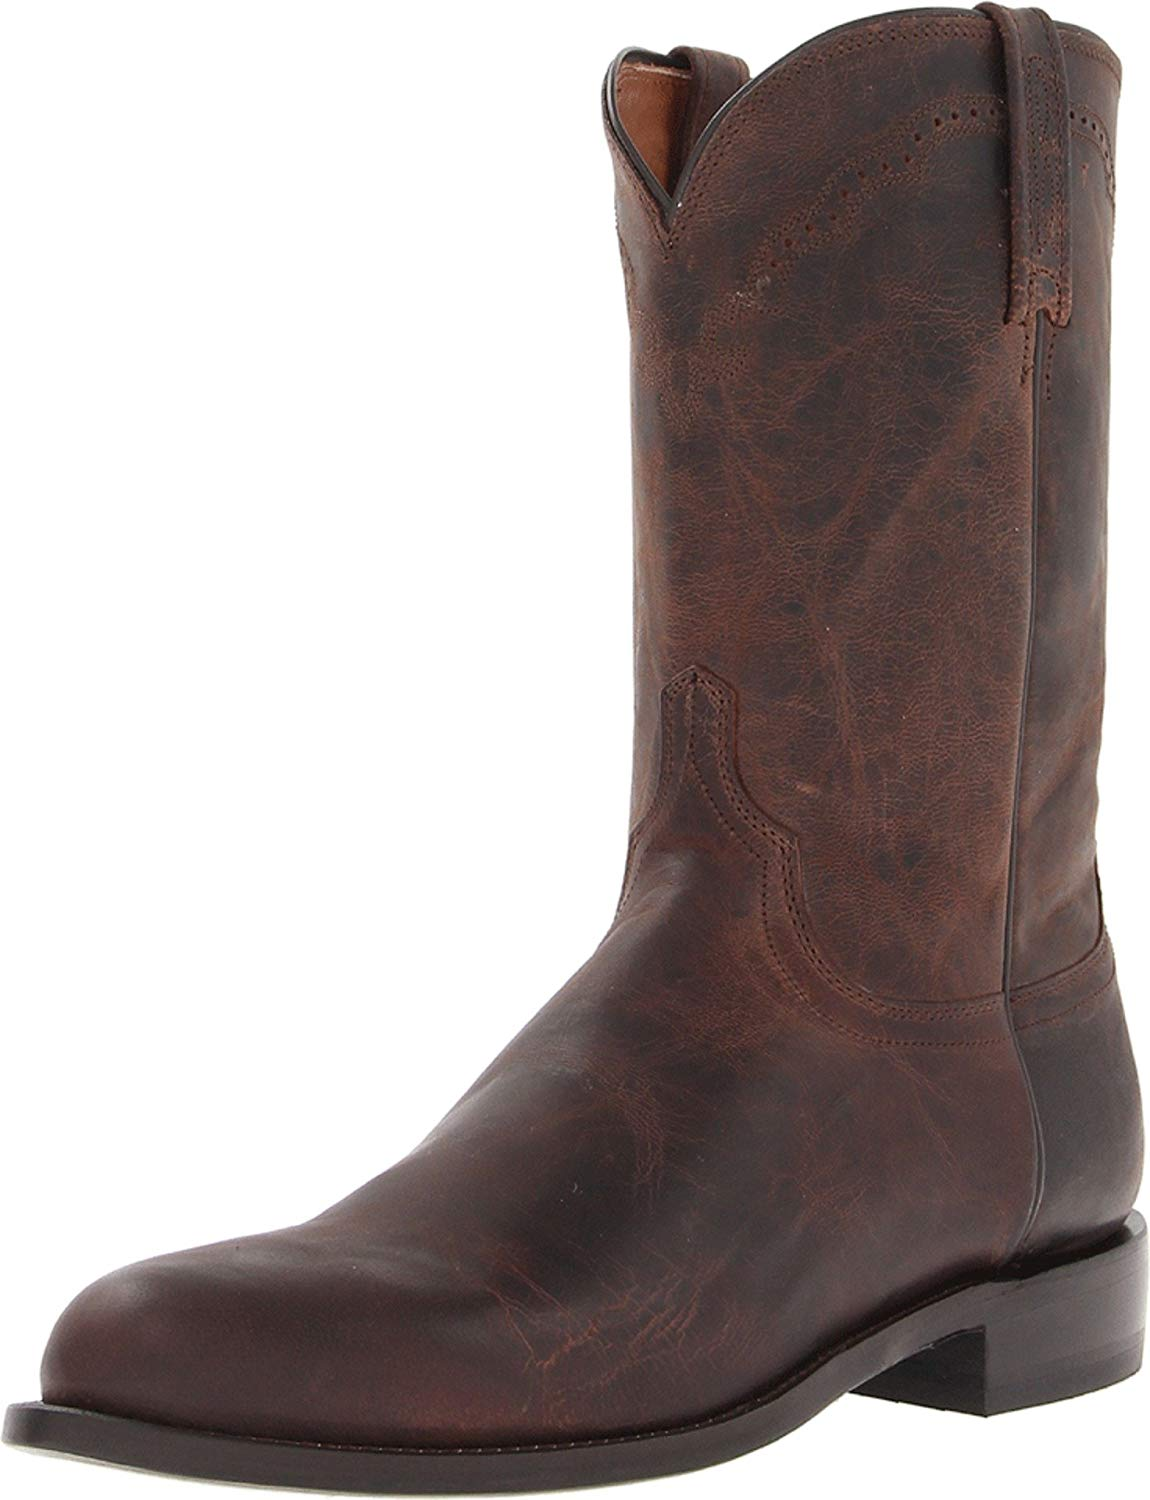 Lucchese Bootmaker Men's Shane-chocolate Madras Goat Roper Riding Boot